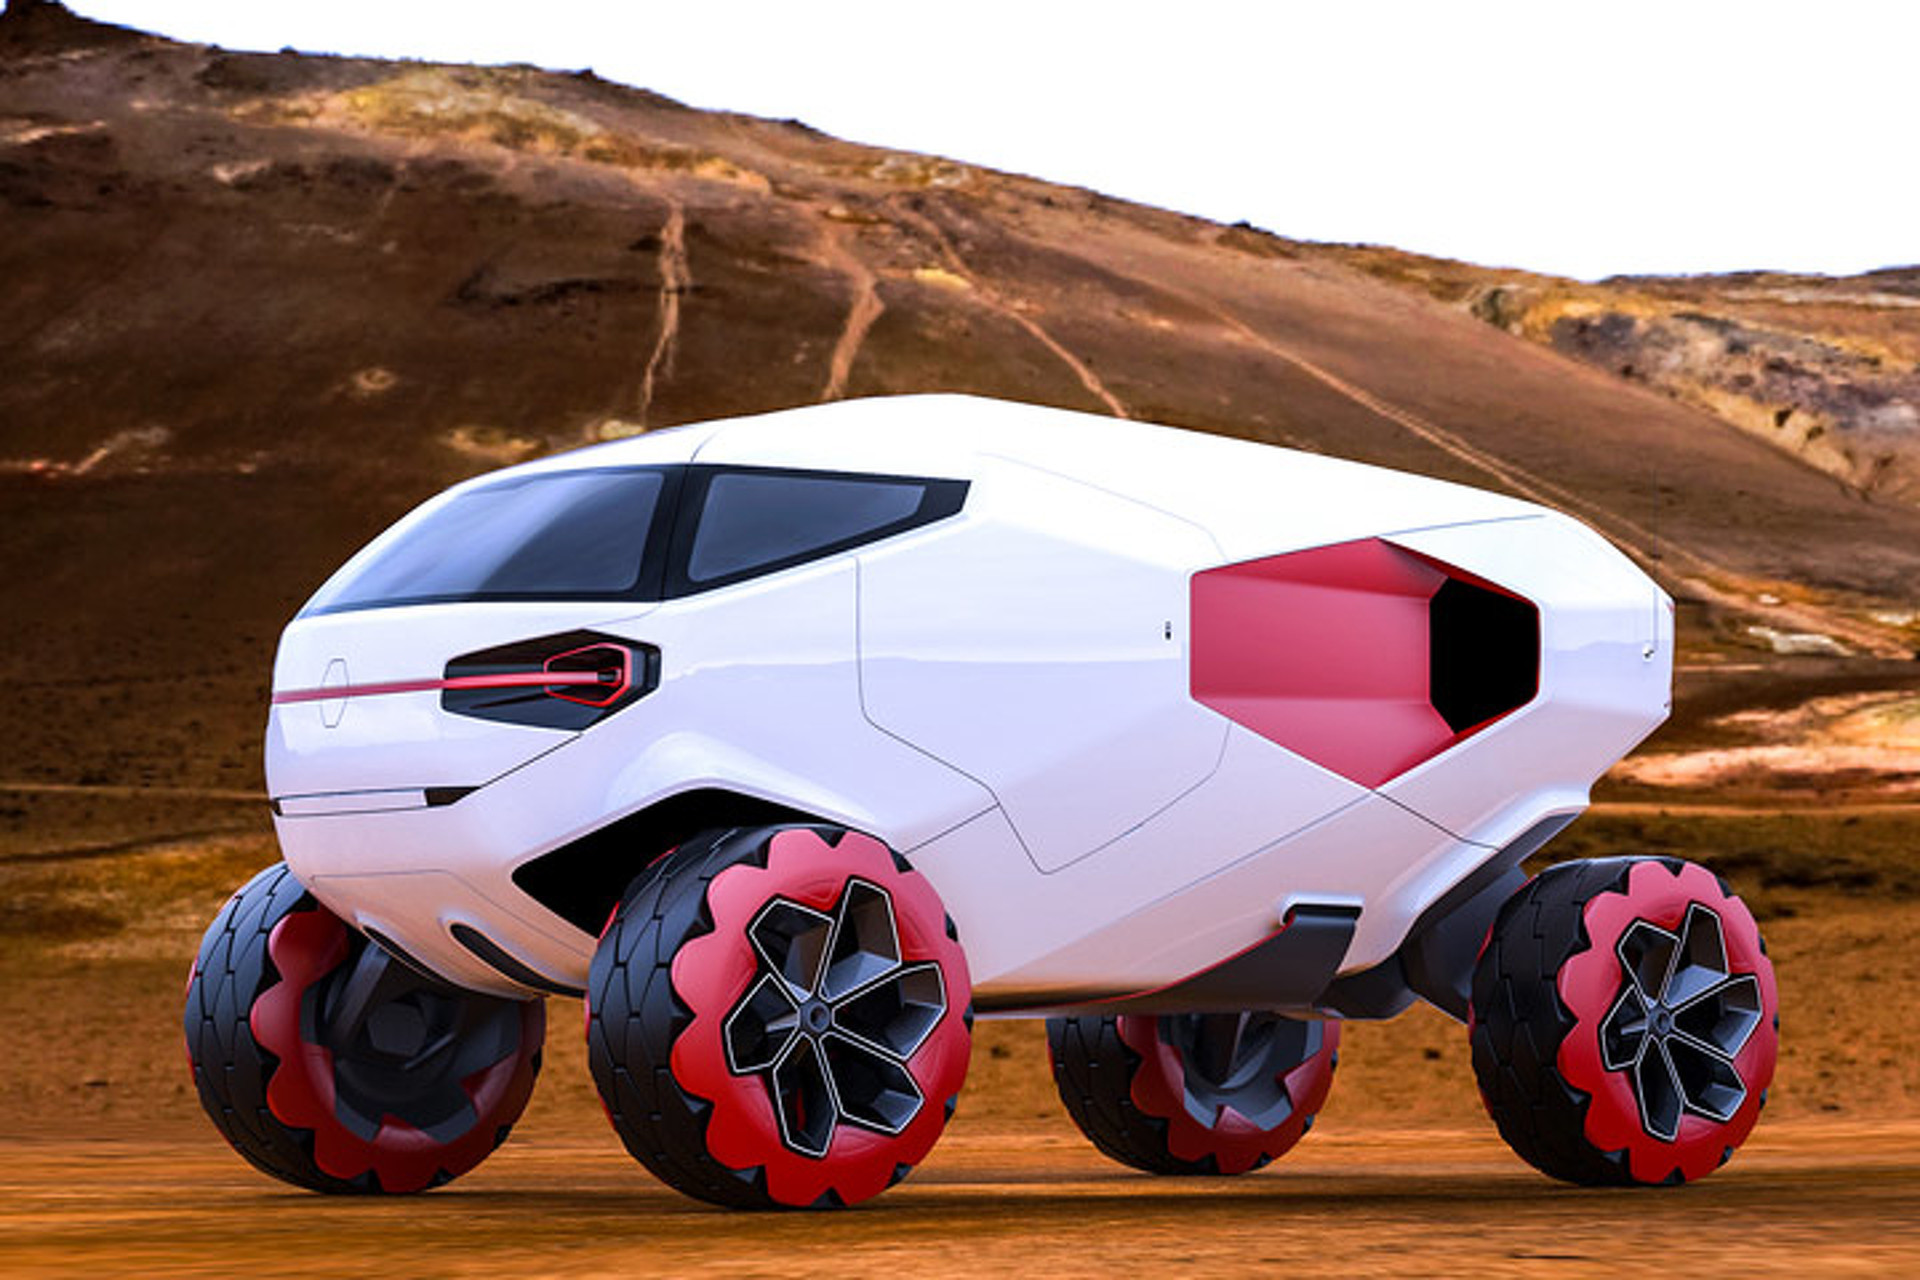 Radical DACAR Concept Could Change Off-Road Racing